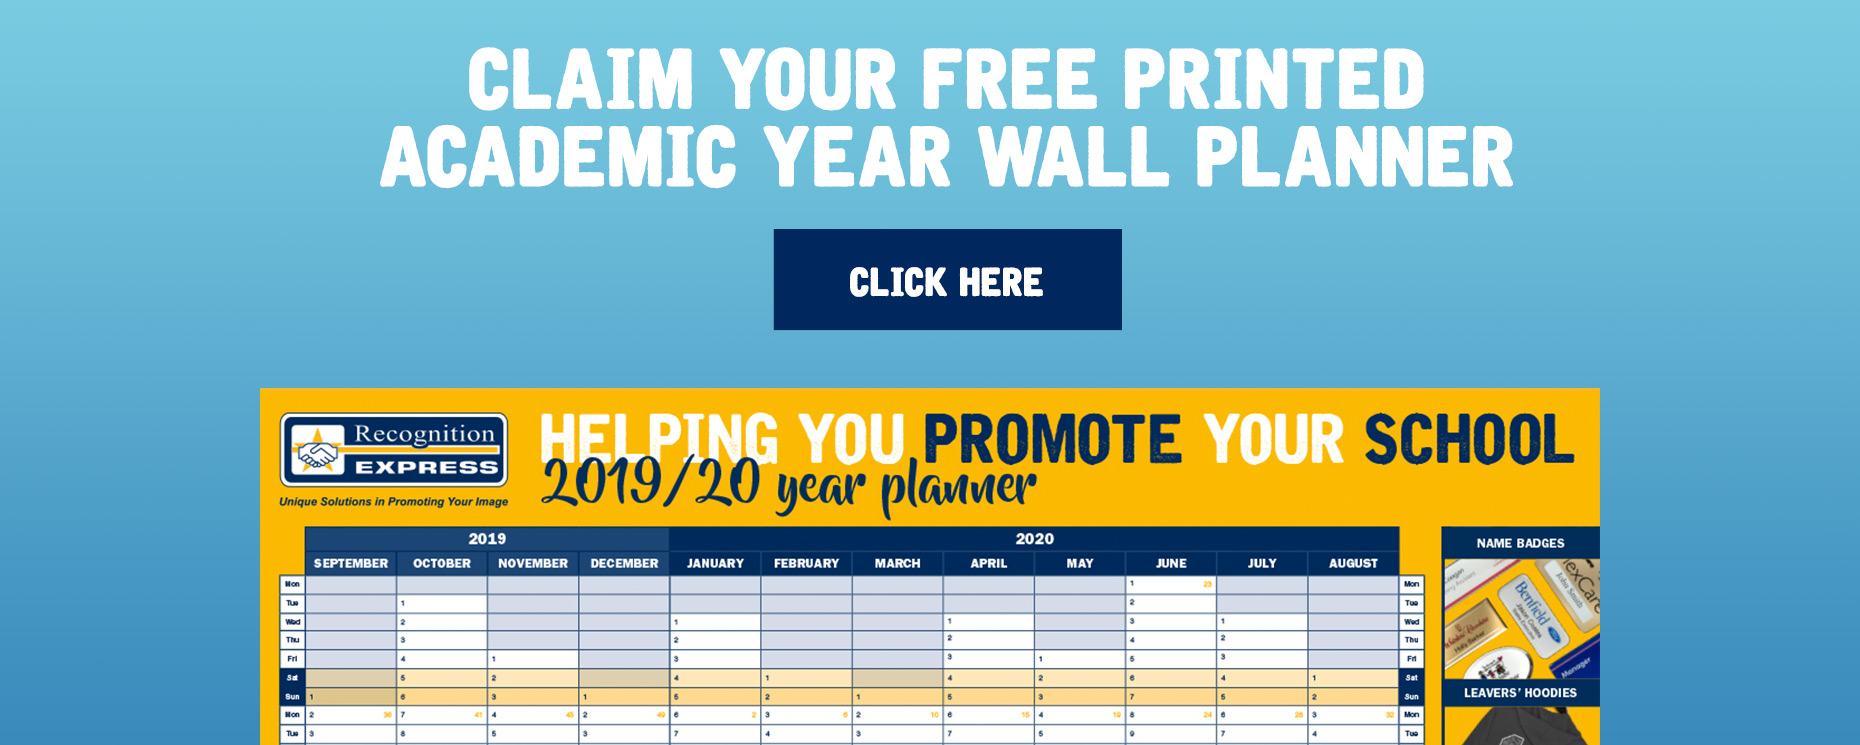 Free Wall Planner